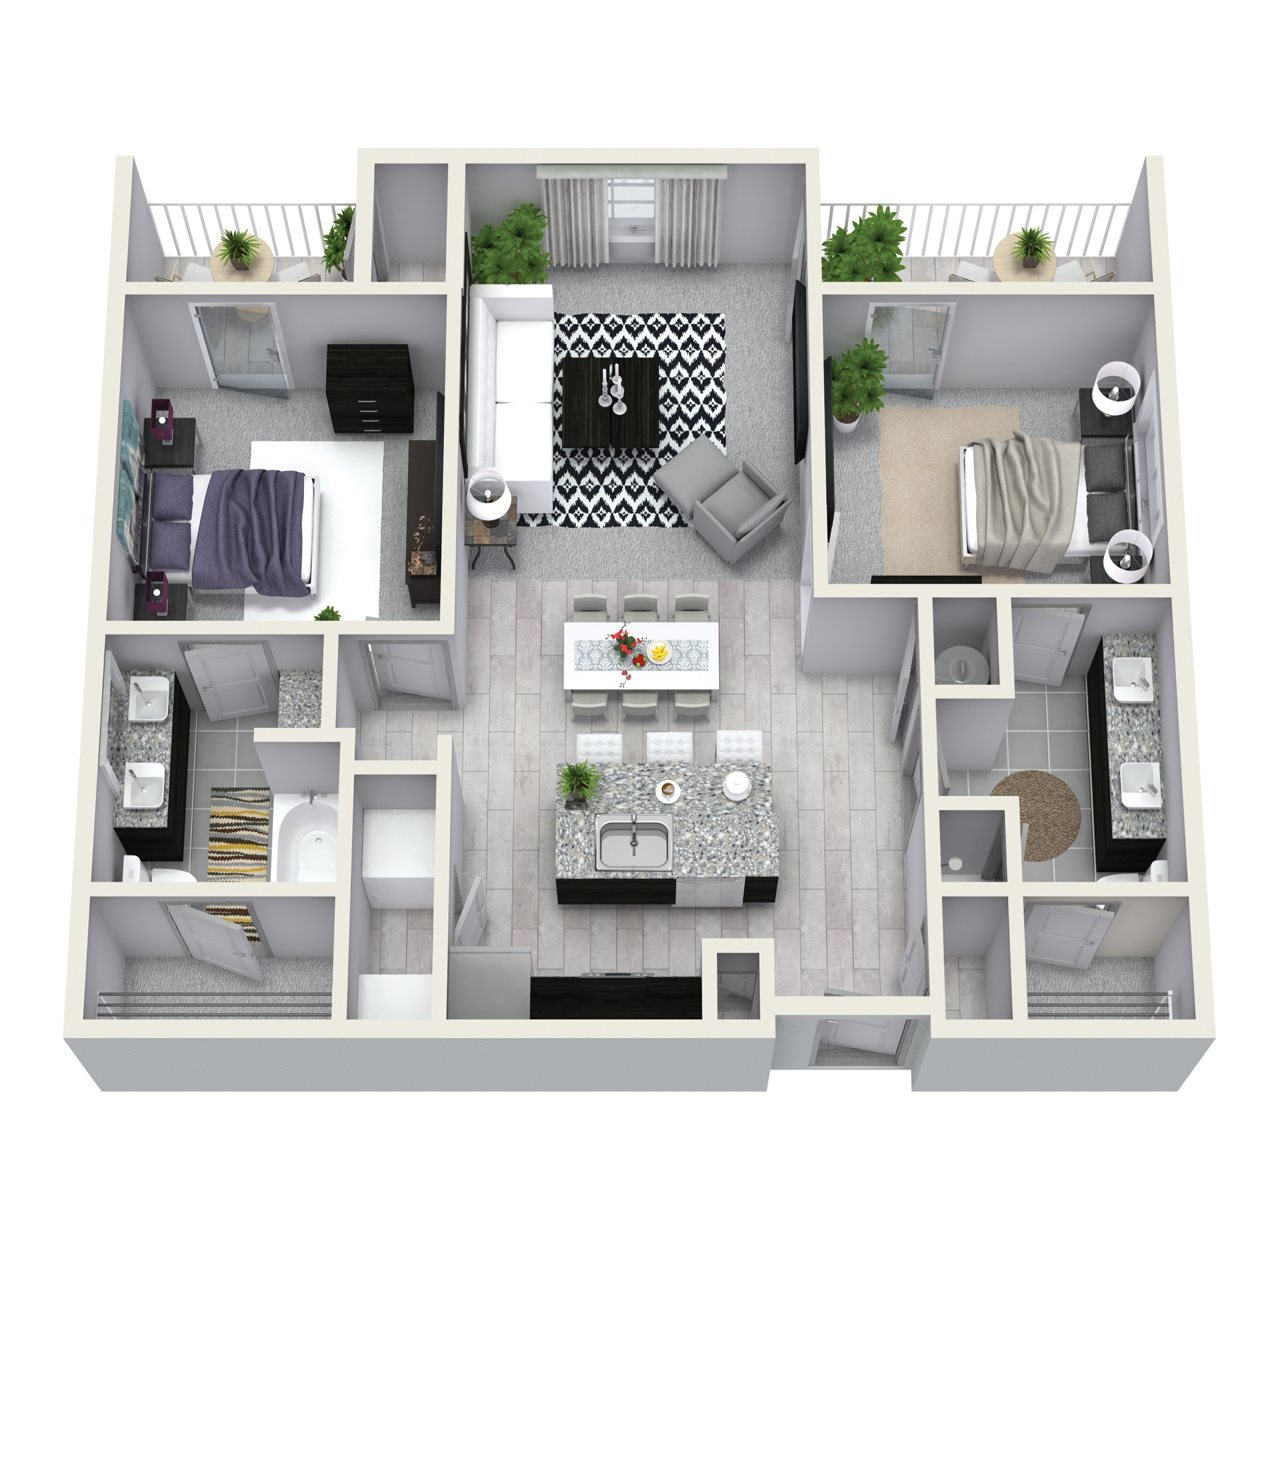 2 Bedroom 2 Bath 1058 sqft B1 Floor Plan 8